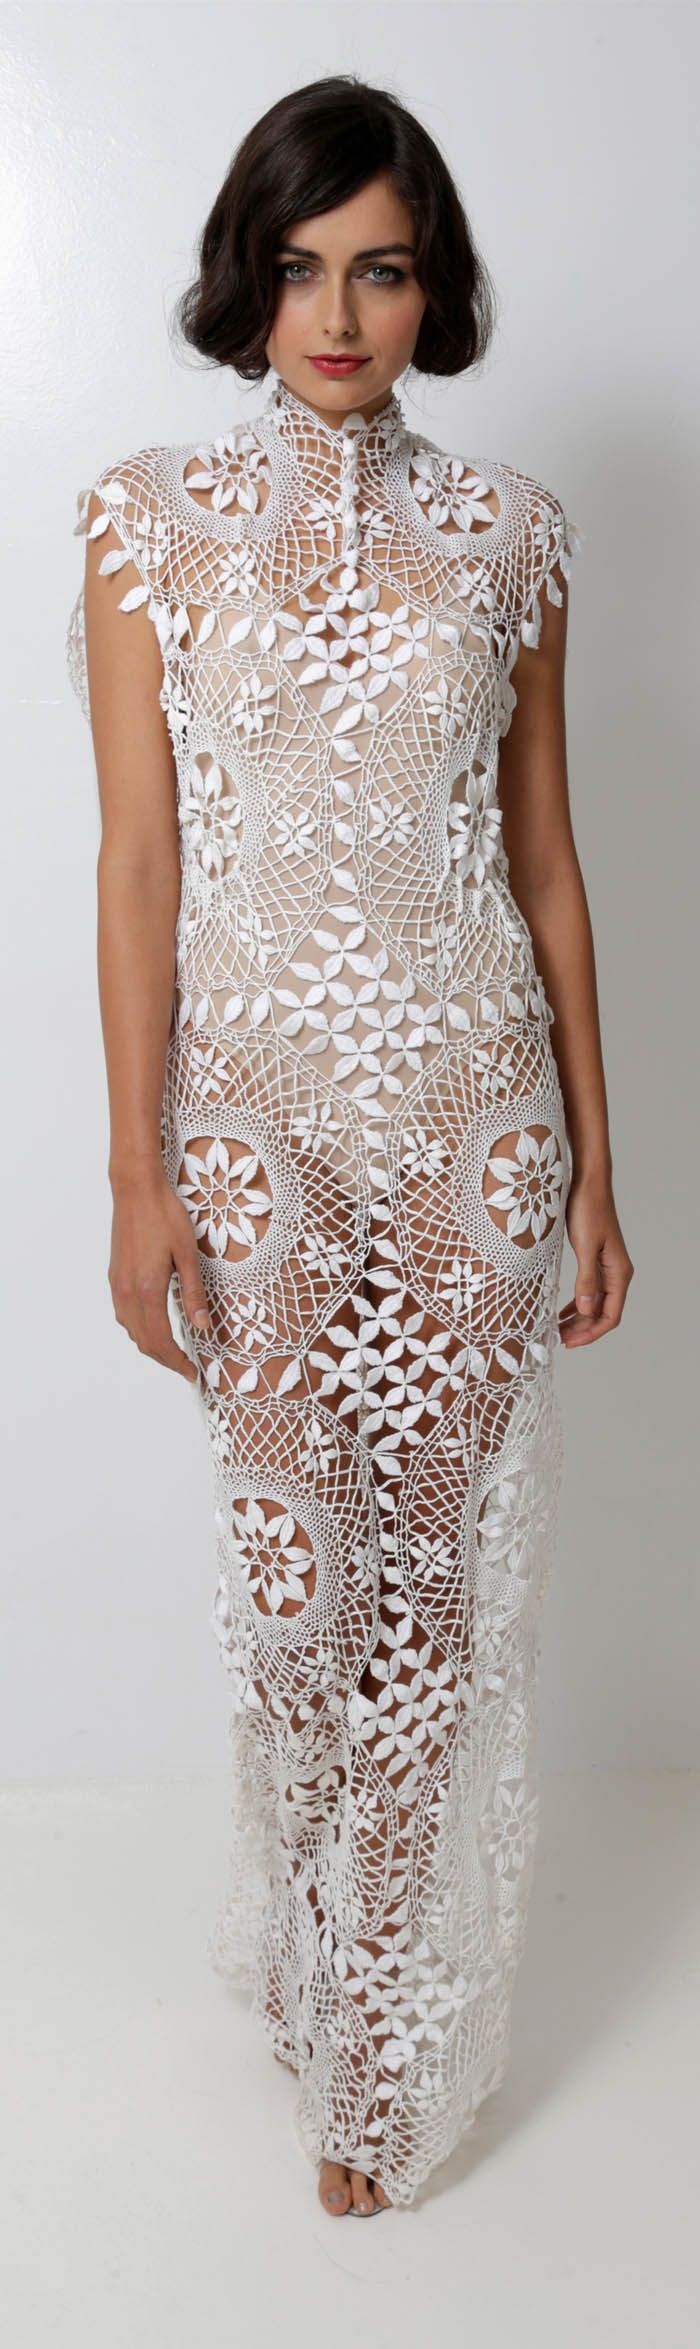 Lace dress with shorts underneath september 2019  best Кружево images on Pinterest  Weddings Blouses and Boleros